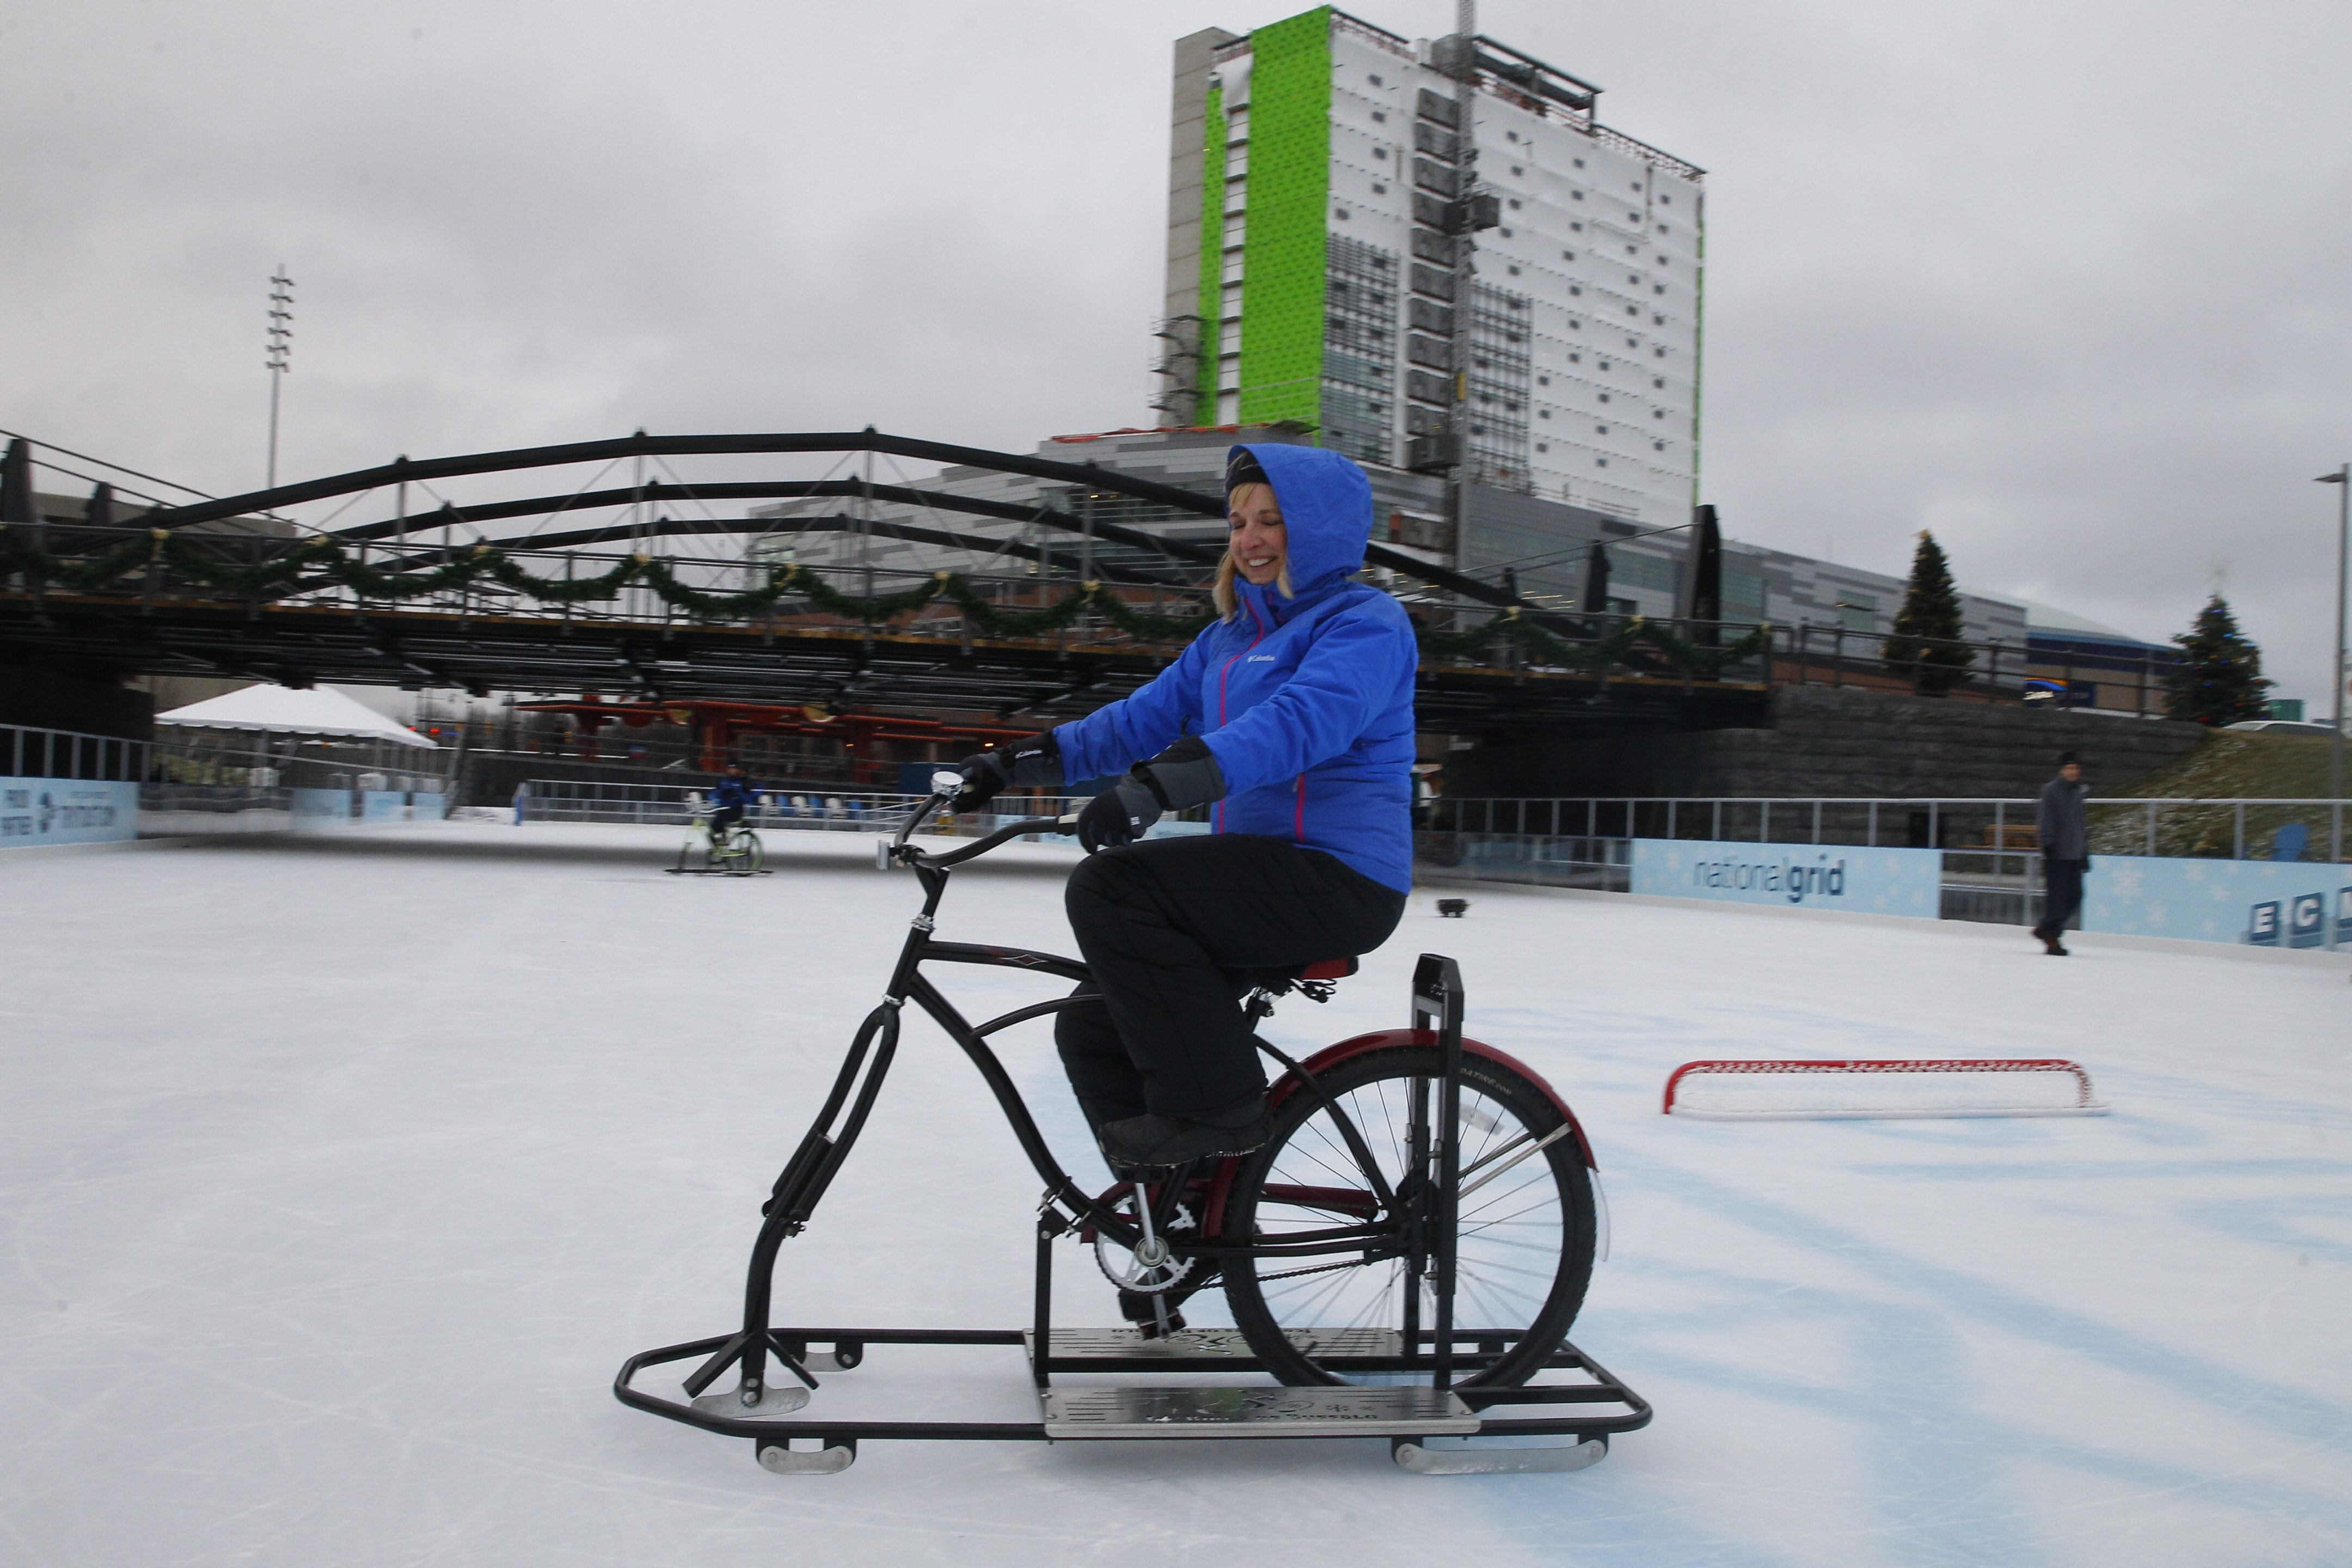 3 lien cut here Lisa Florczak of Ice Bikes demonstrates riding one as preparations underway for tonight's opening of the skating rinks  at Canalside  in Buffalo, N.Y. , on Thursday  December  18, 2014. ()